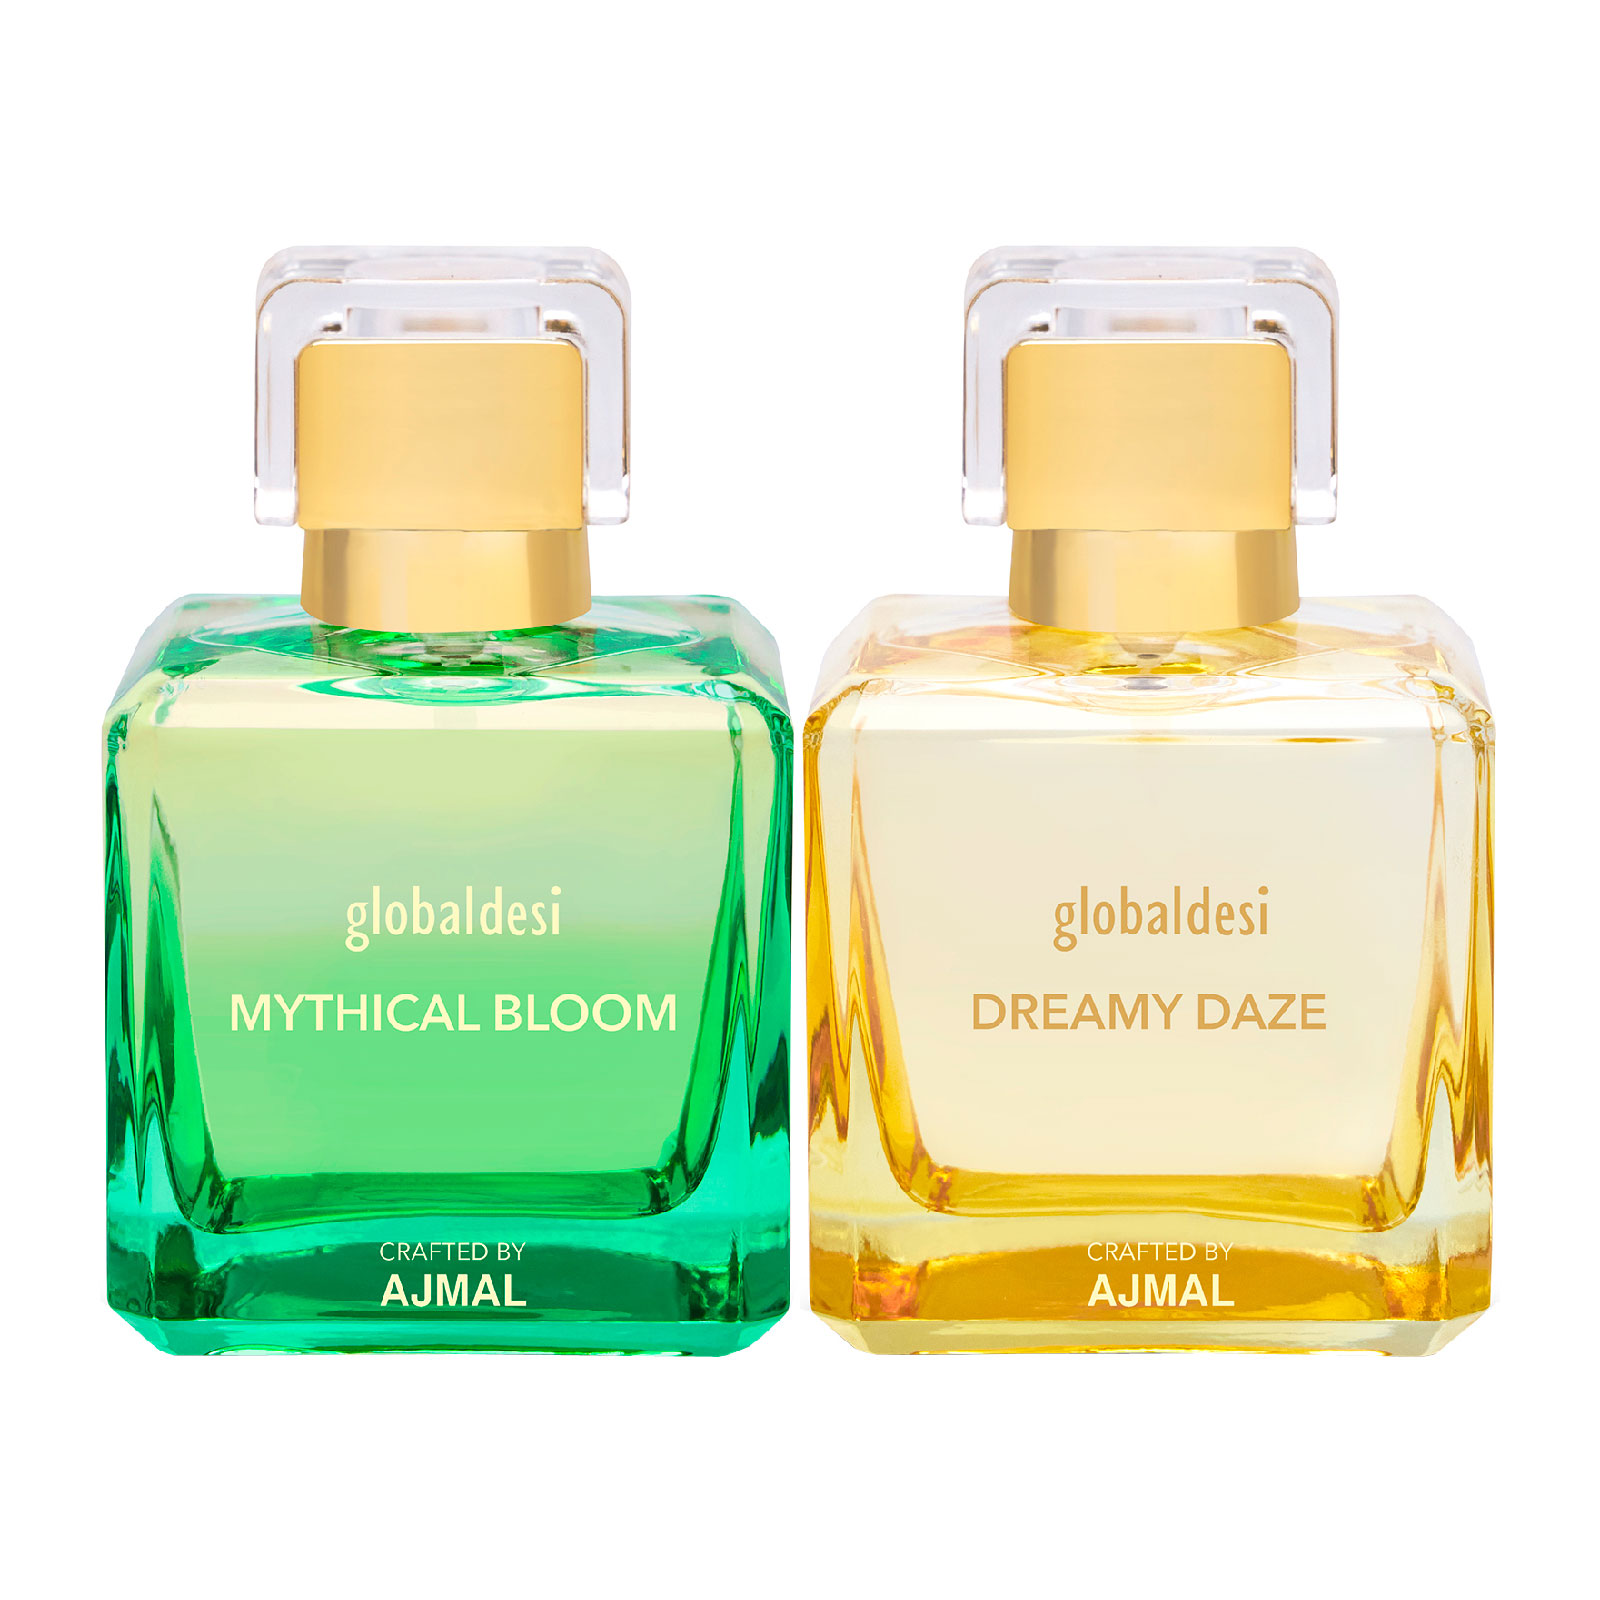 Global Desi Crafted By Ajmal | Global Mythical Bloom & Dreamy Daze Pack of 2 Eau De Parfum 50ML for Women Crafted by Ajmal + 2 Parfum Testers